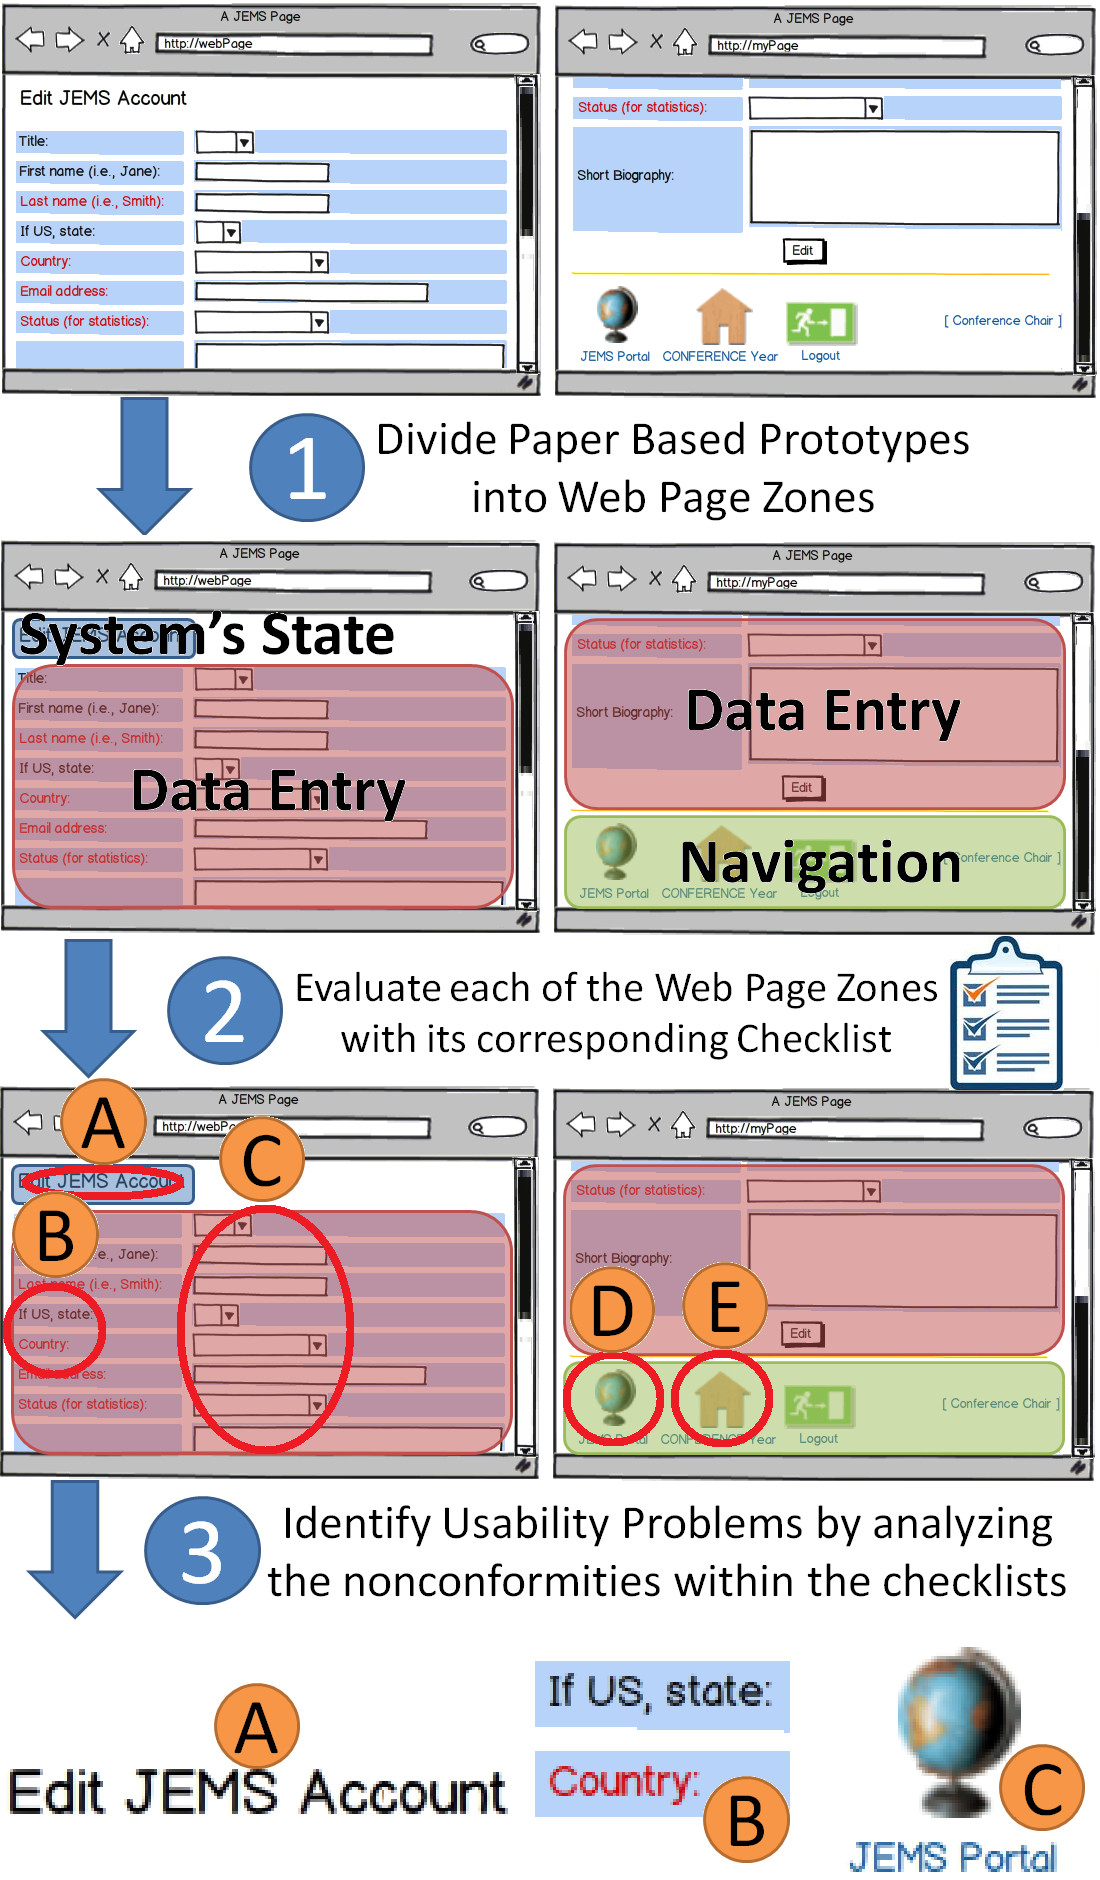 https://static-content.springer.com/image/art%3A10.1186%2F2195-1721-1-2/MediaObjects/40411_2013_Article_2_Fig1_HTML.jpg